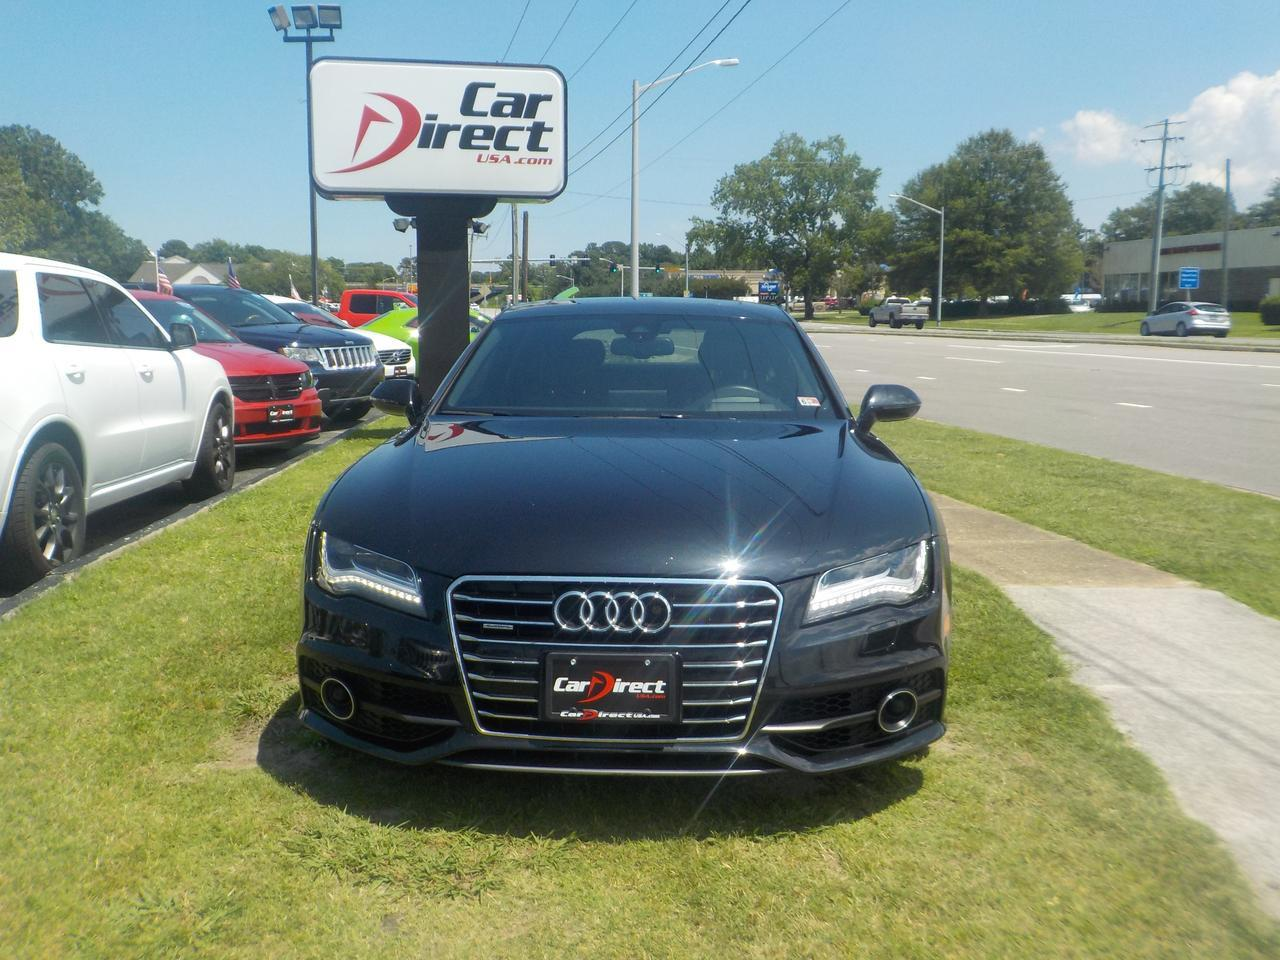 2012 AUDI A7 PRESITGE HATCHBACK AWD, NAVIGATION, TINTED WINDOWS, PARKING SENSORS, BACKUP CAMERA, POWER LIFTGATE! Virginia Beach VA